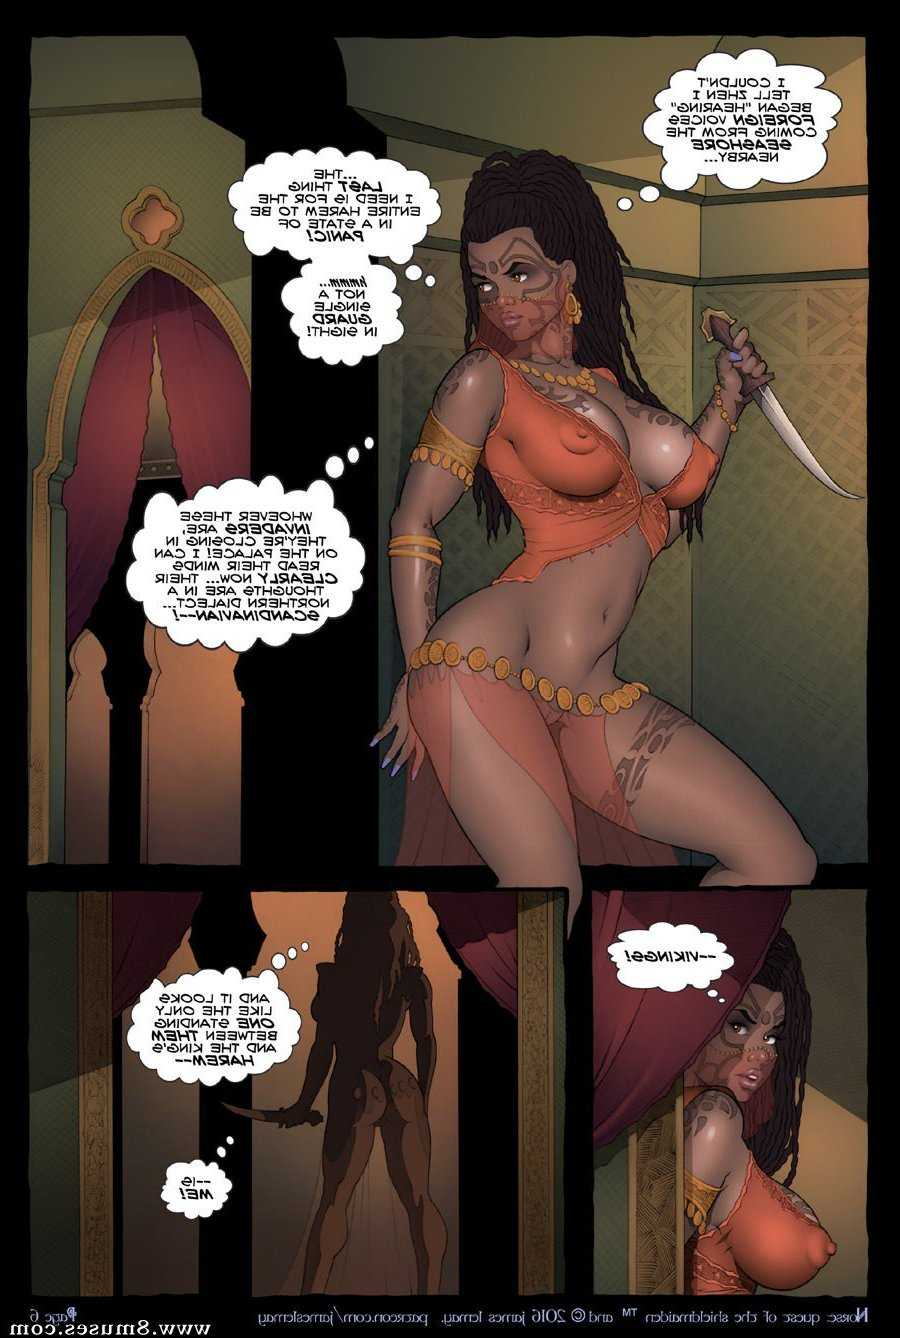 James-Lemay-Comics/Norse-Quest-of-the-Shield-Maiden Norse_Quest_of_the_Shield_Maiden__8muses_-_Sex_and_Porn_Comics_7.jpg